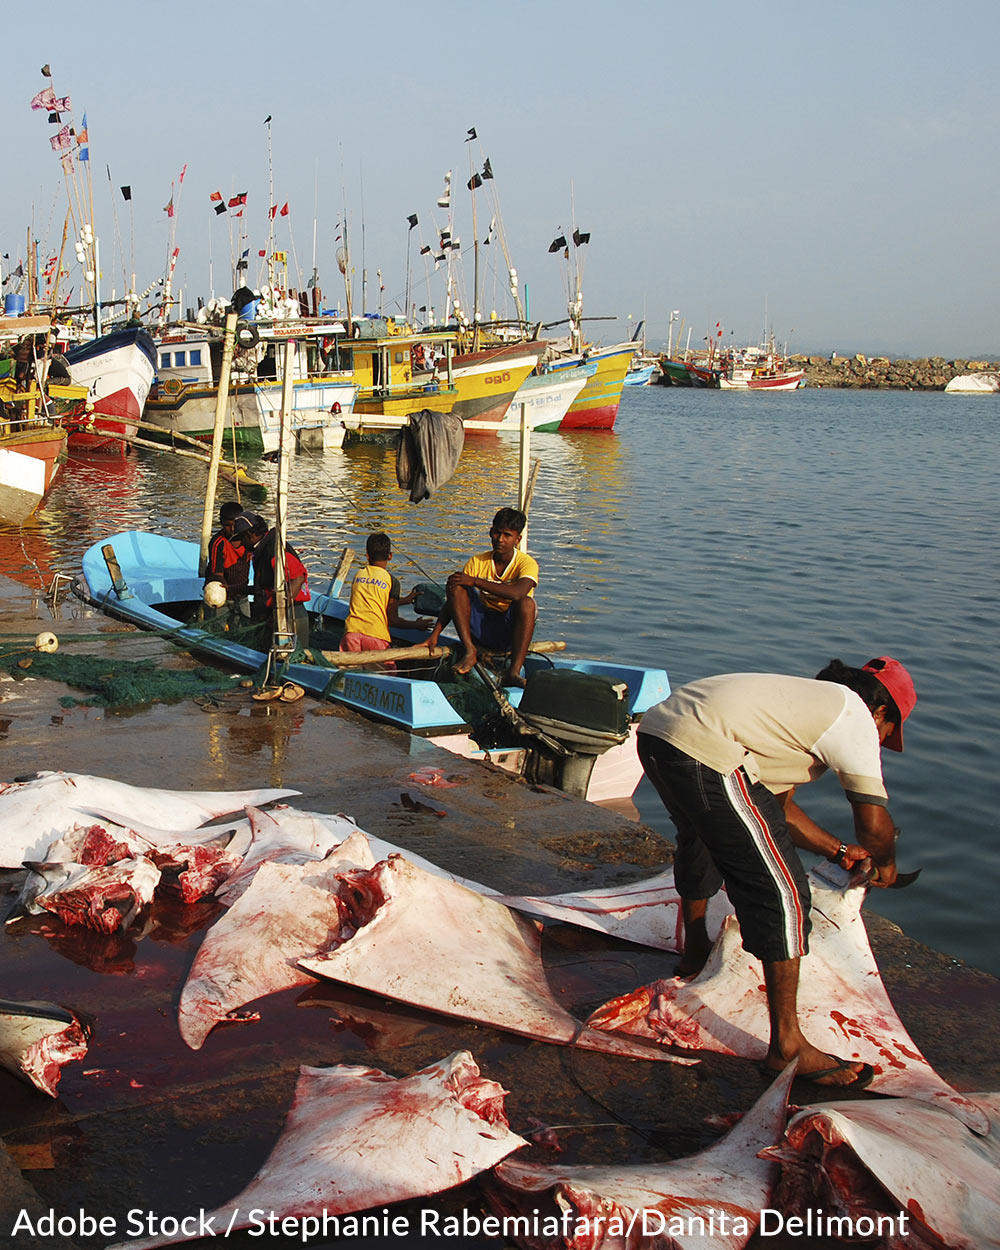 One hundred million sharks are slaughtered every year for their fins.